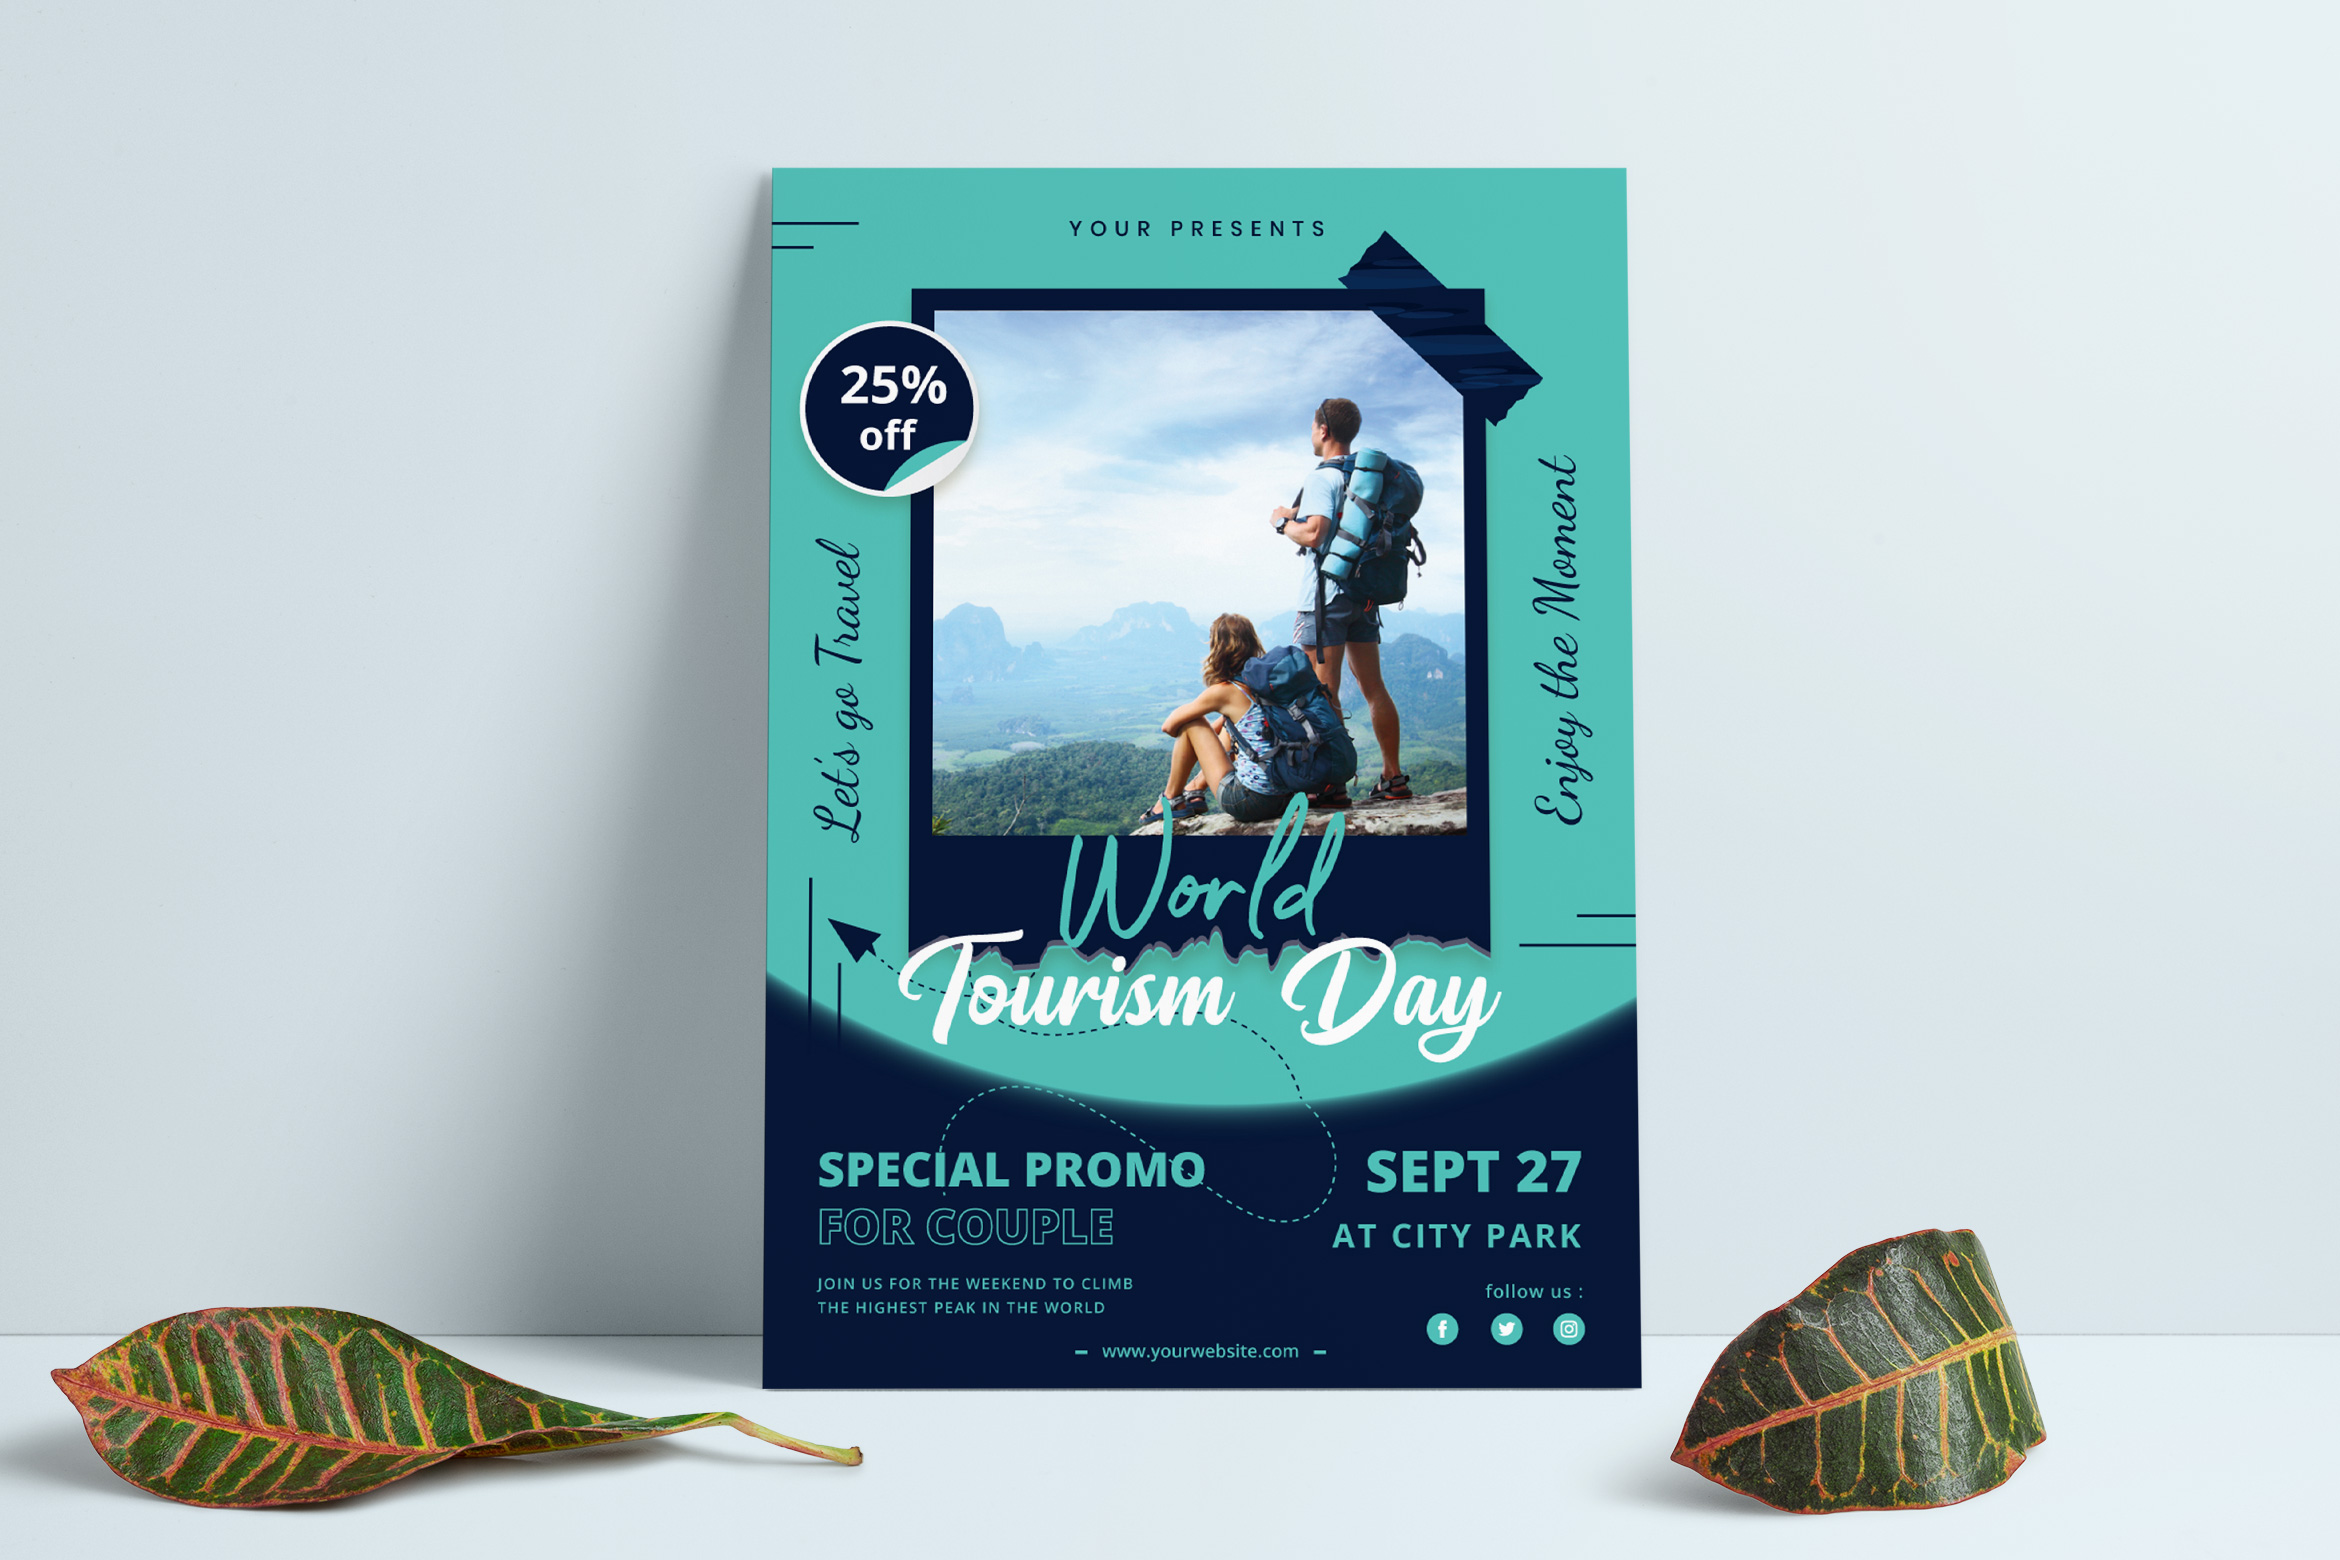 Tourism Day Poster